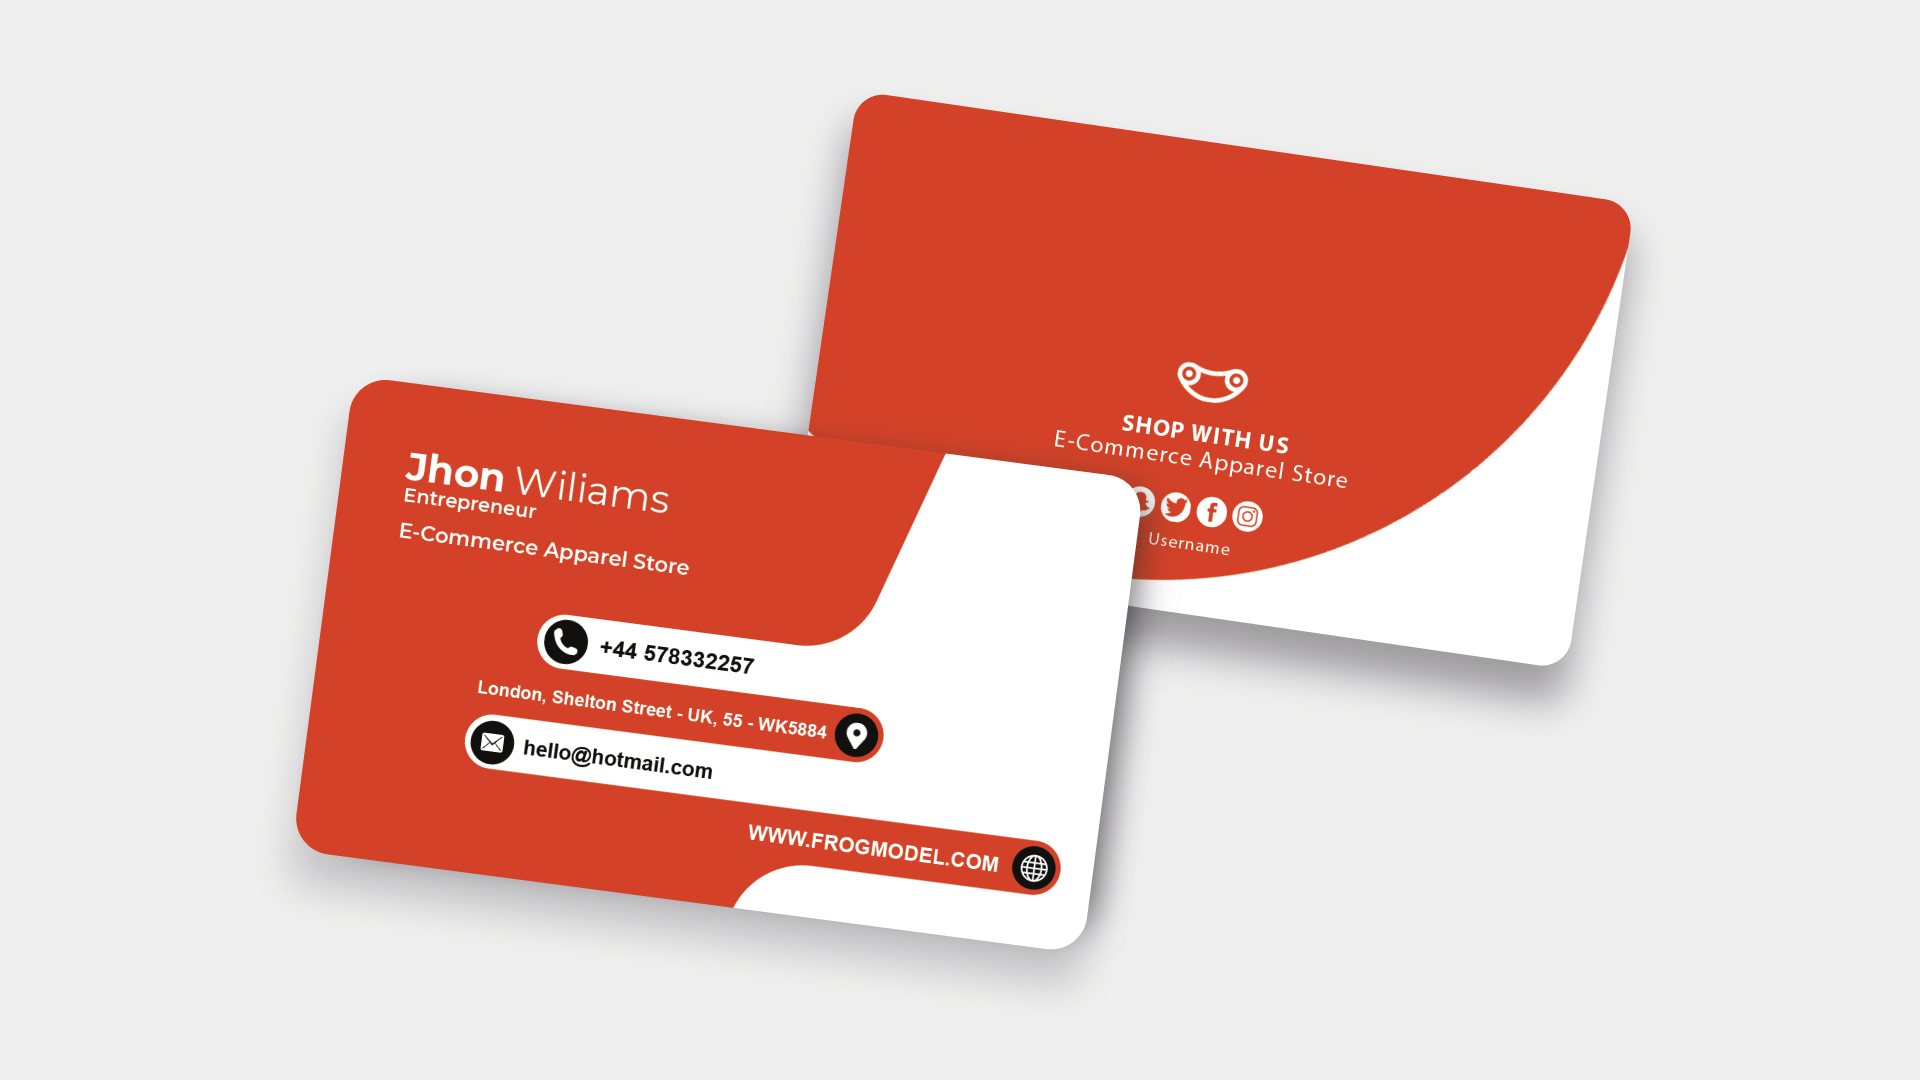 Orange Business Card Templates & Design from FrogModel